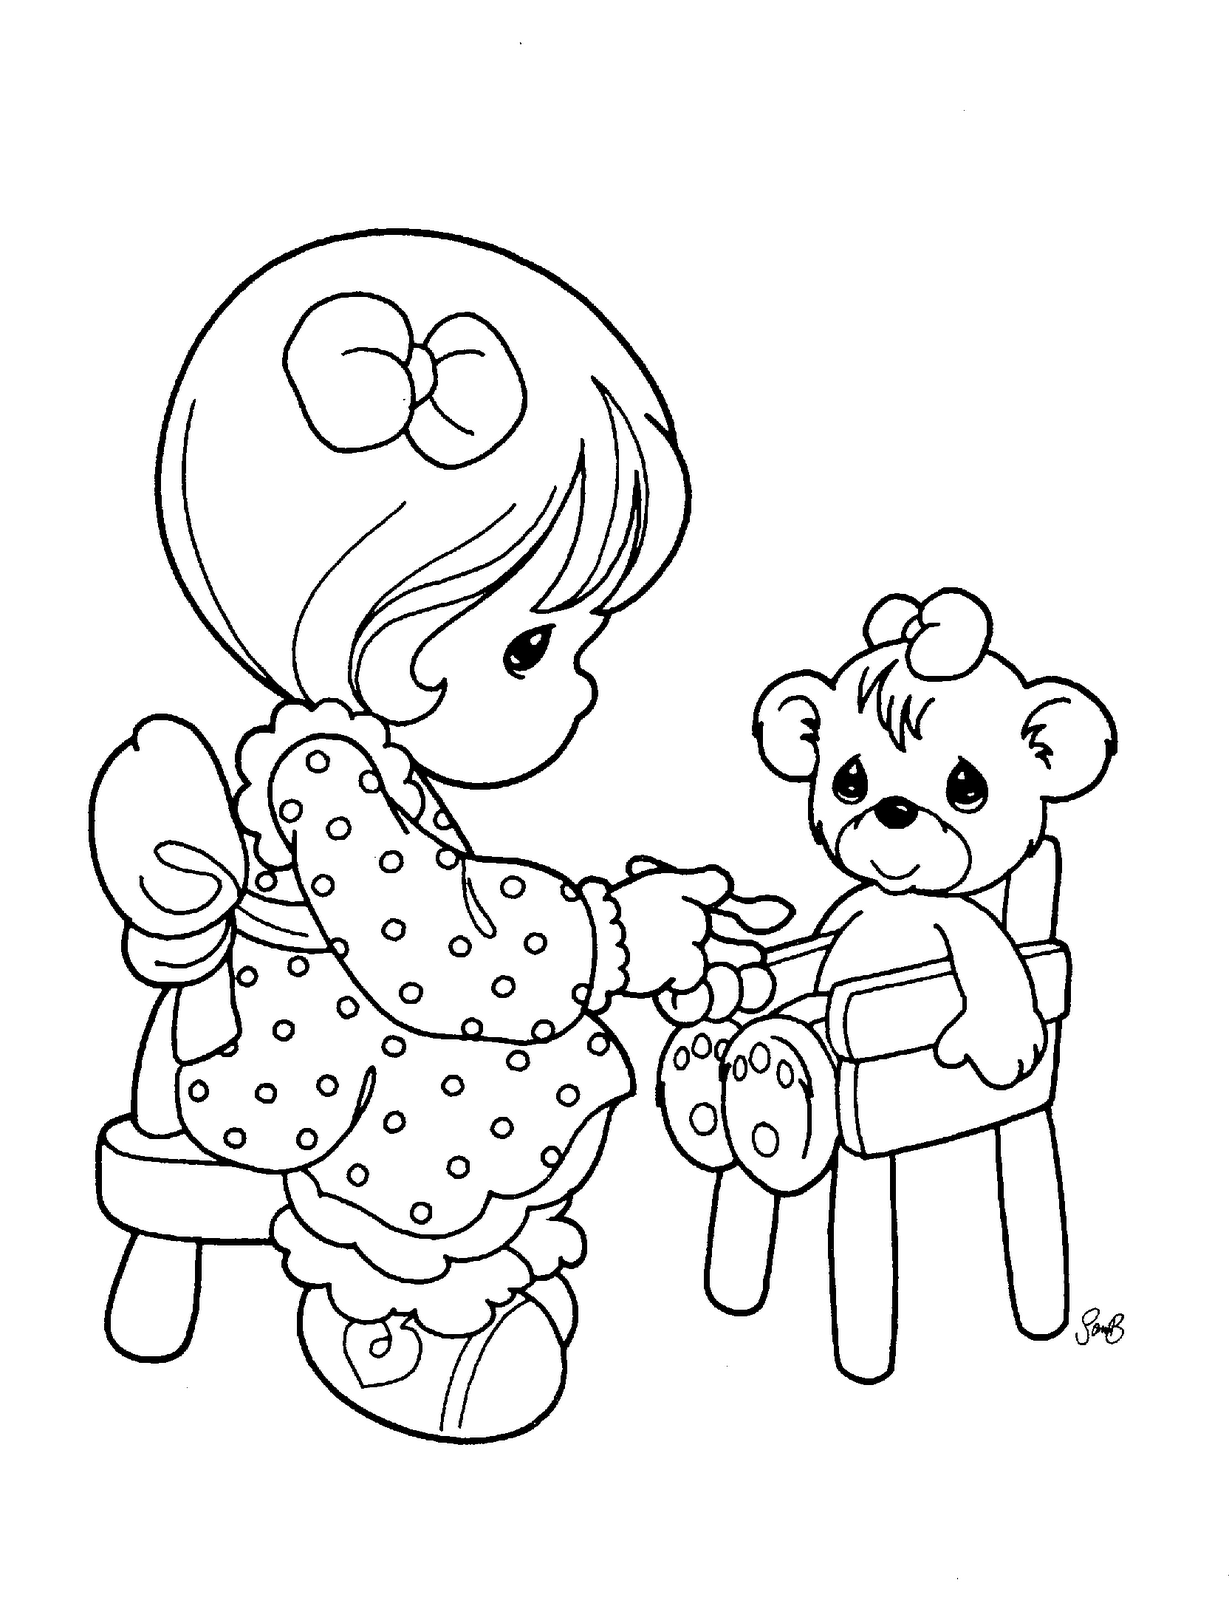 Precious Moments for Love Coloring Pages | ~ Coloring pages ...